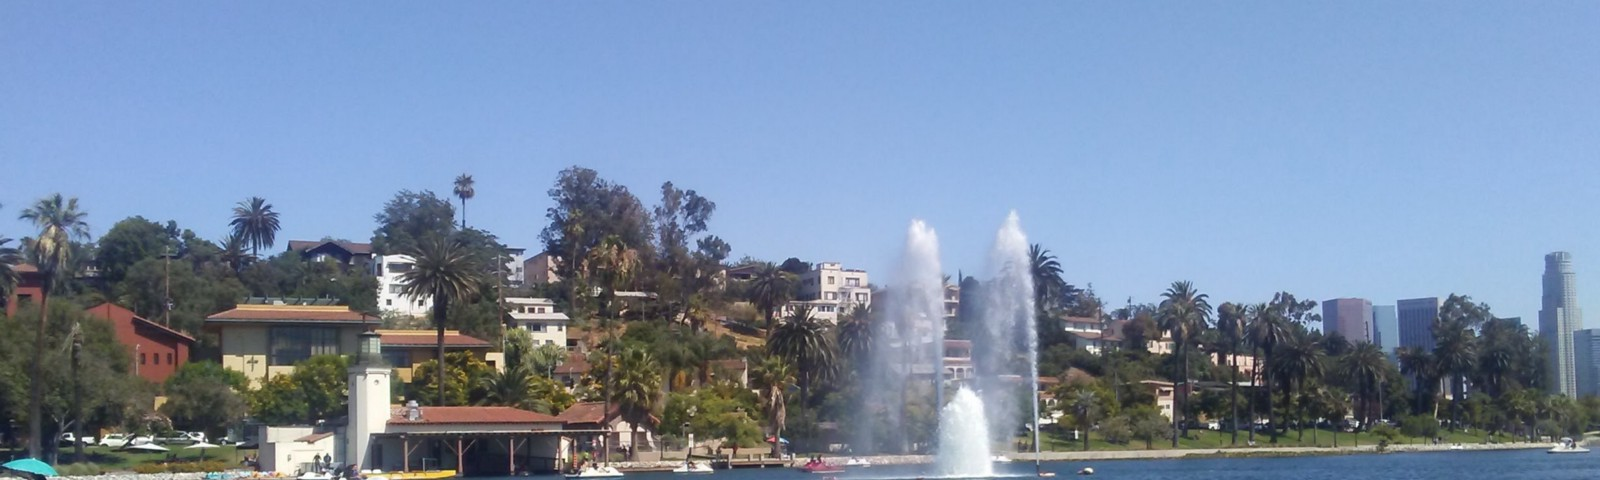 Echo Park Lake fountain, boat concourse and homes on the hillside.